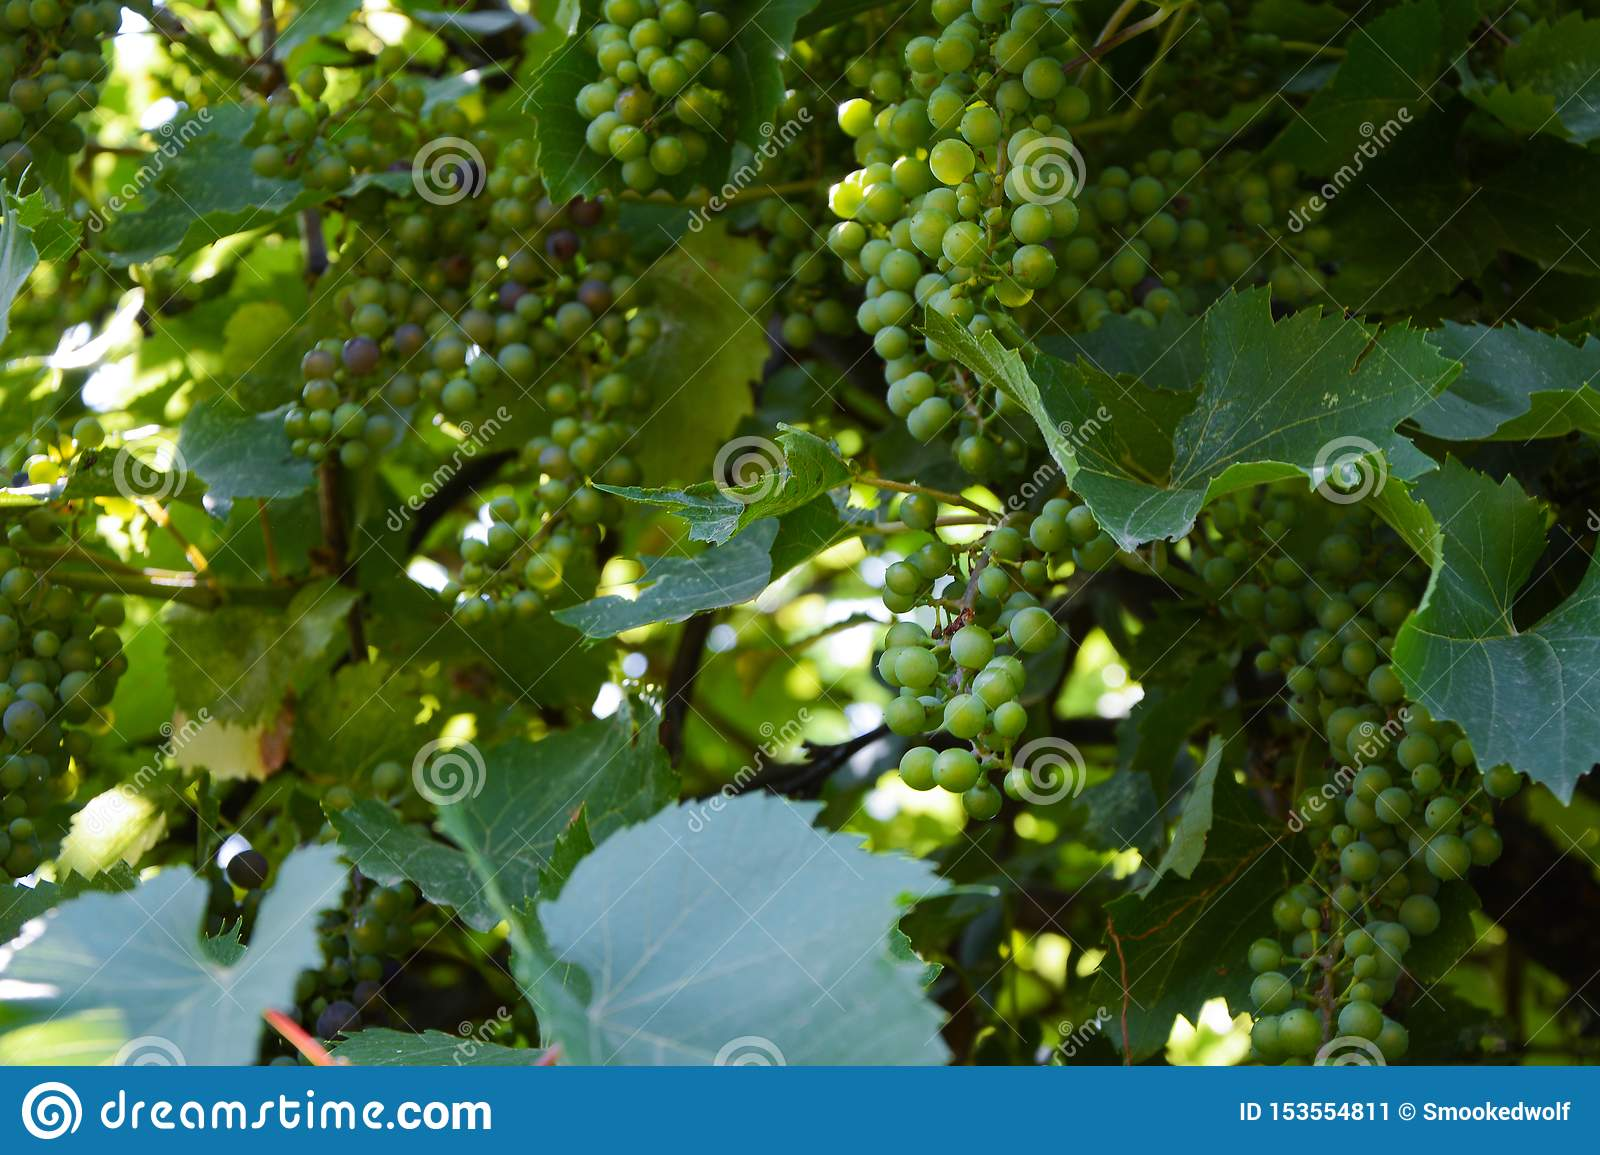 Grapevine on a sunny, green background in the garden